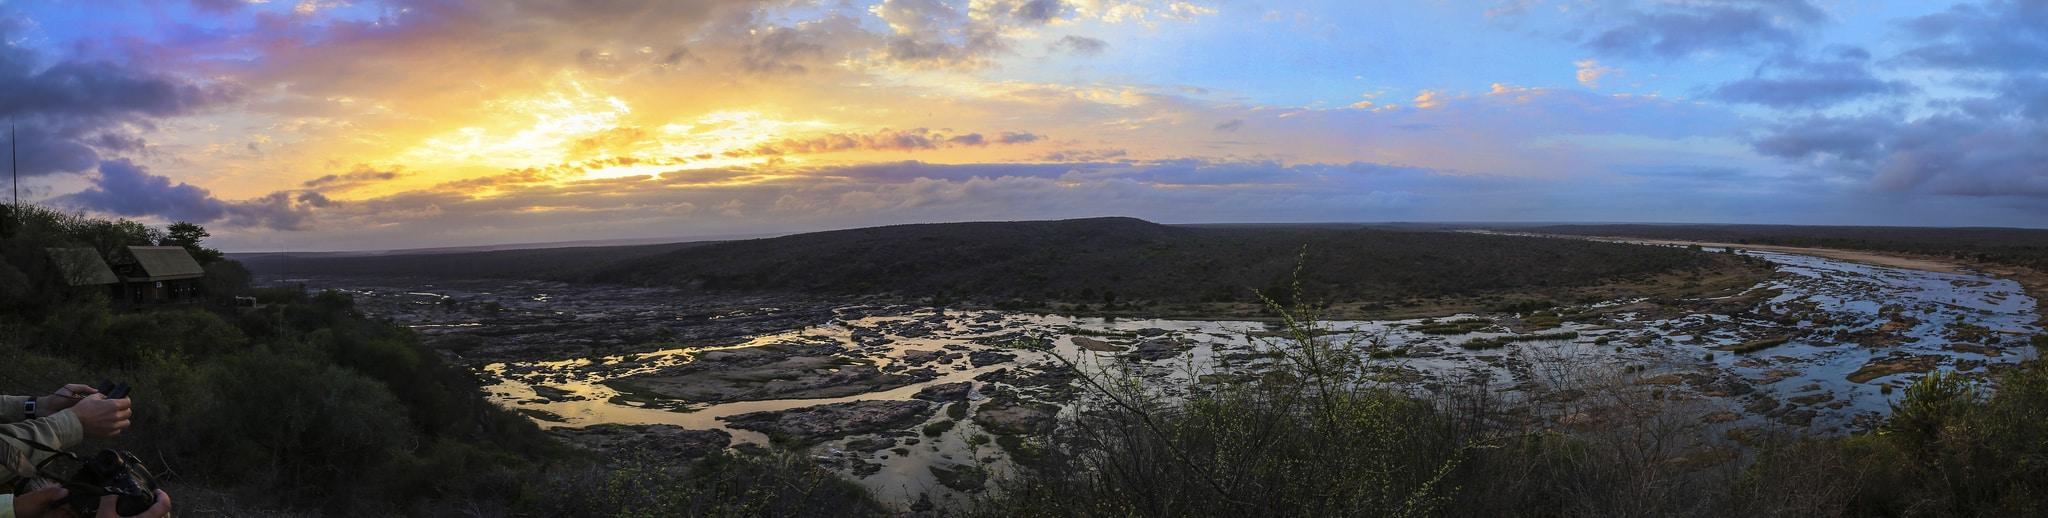 View from Olifants Camp, sheldrickfalls